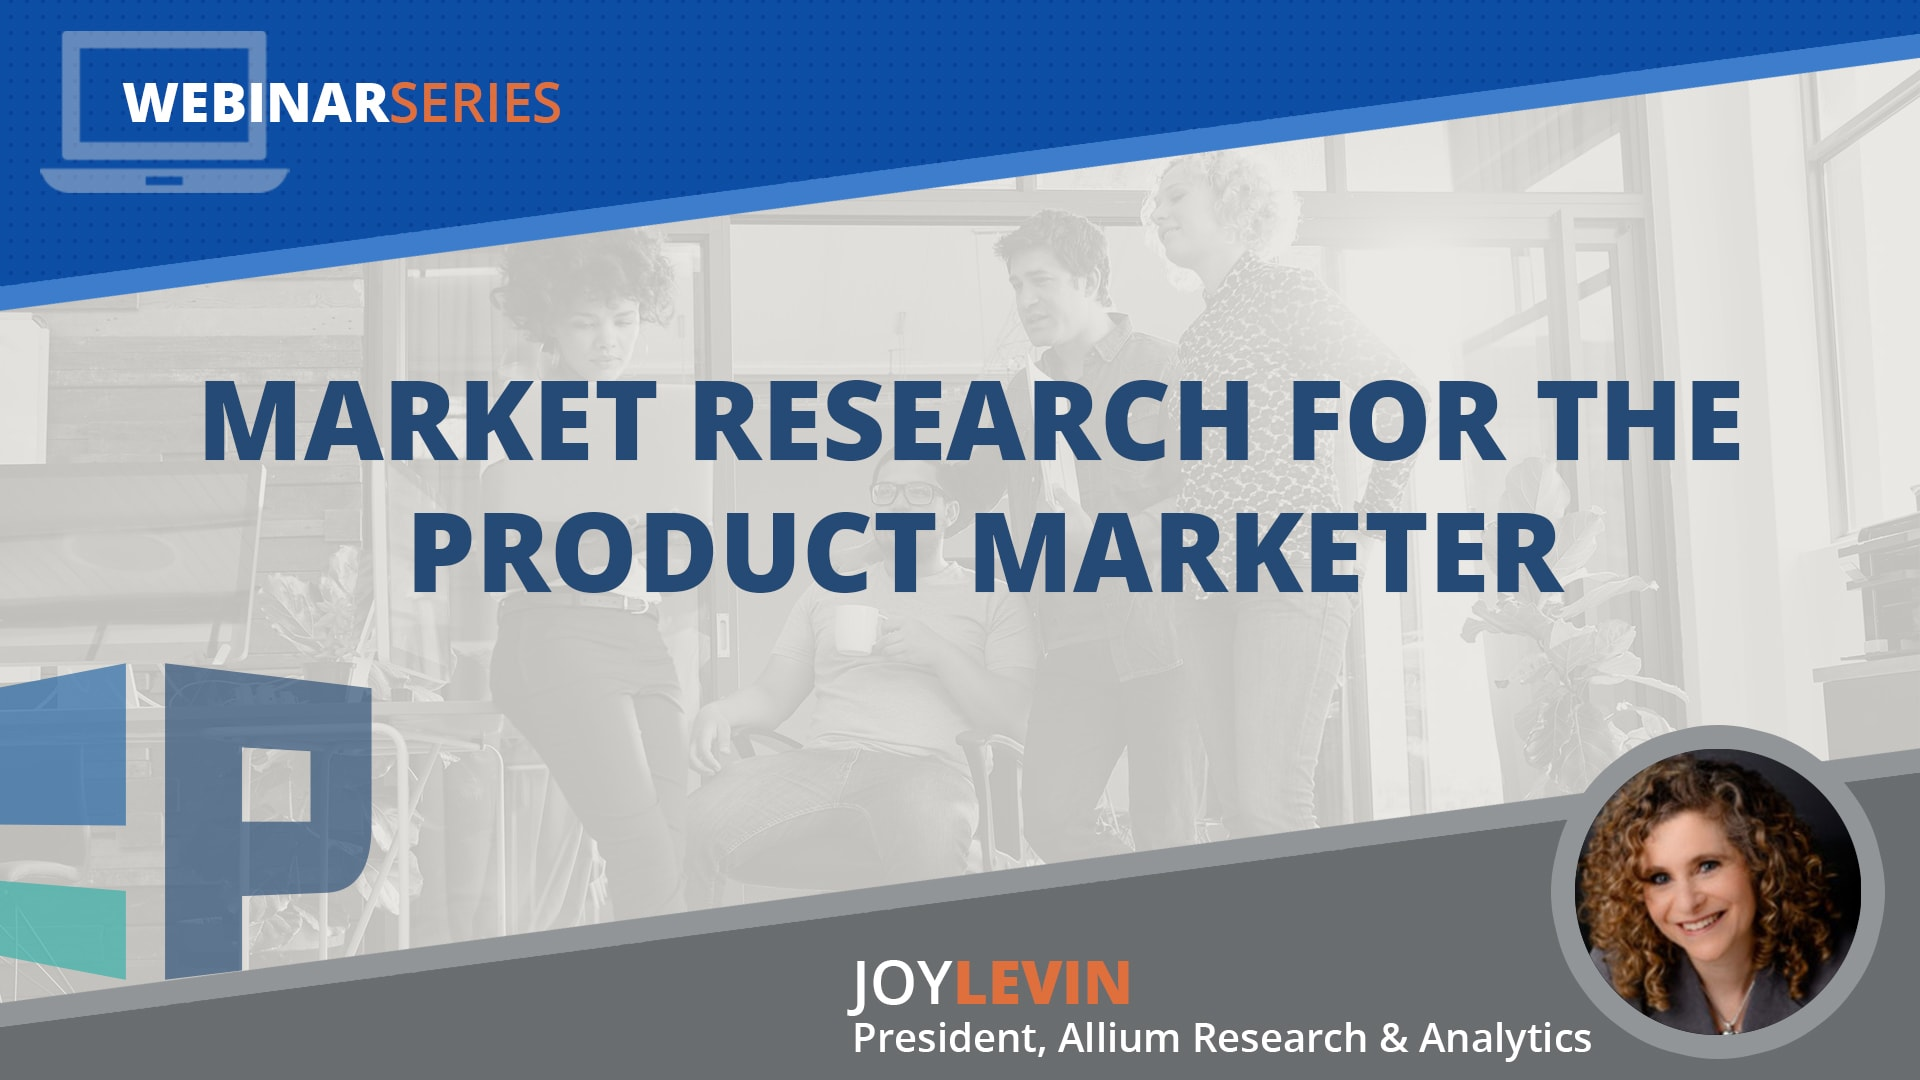 Market Research for the Product Marketer